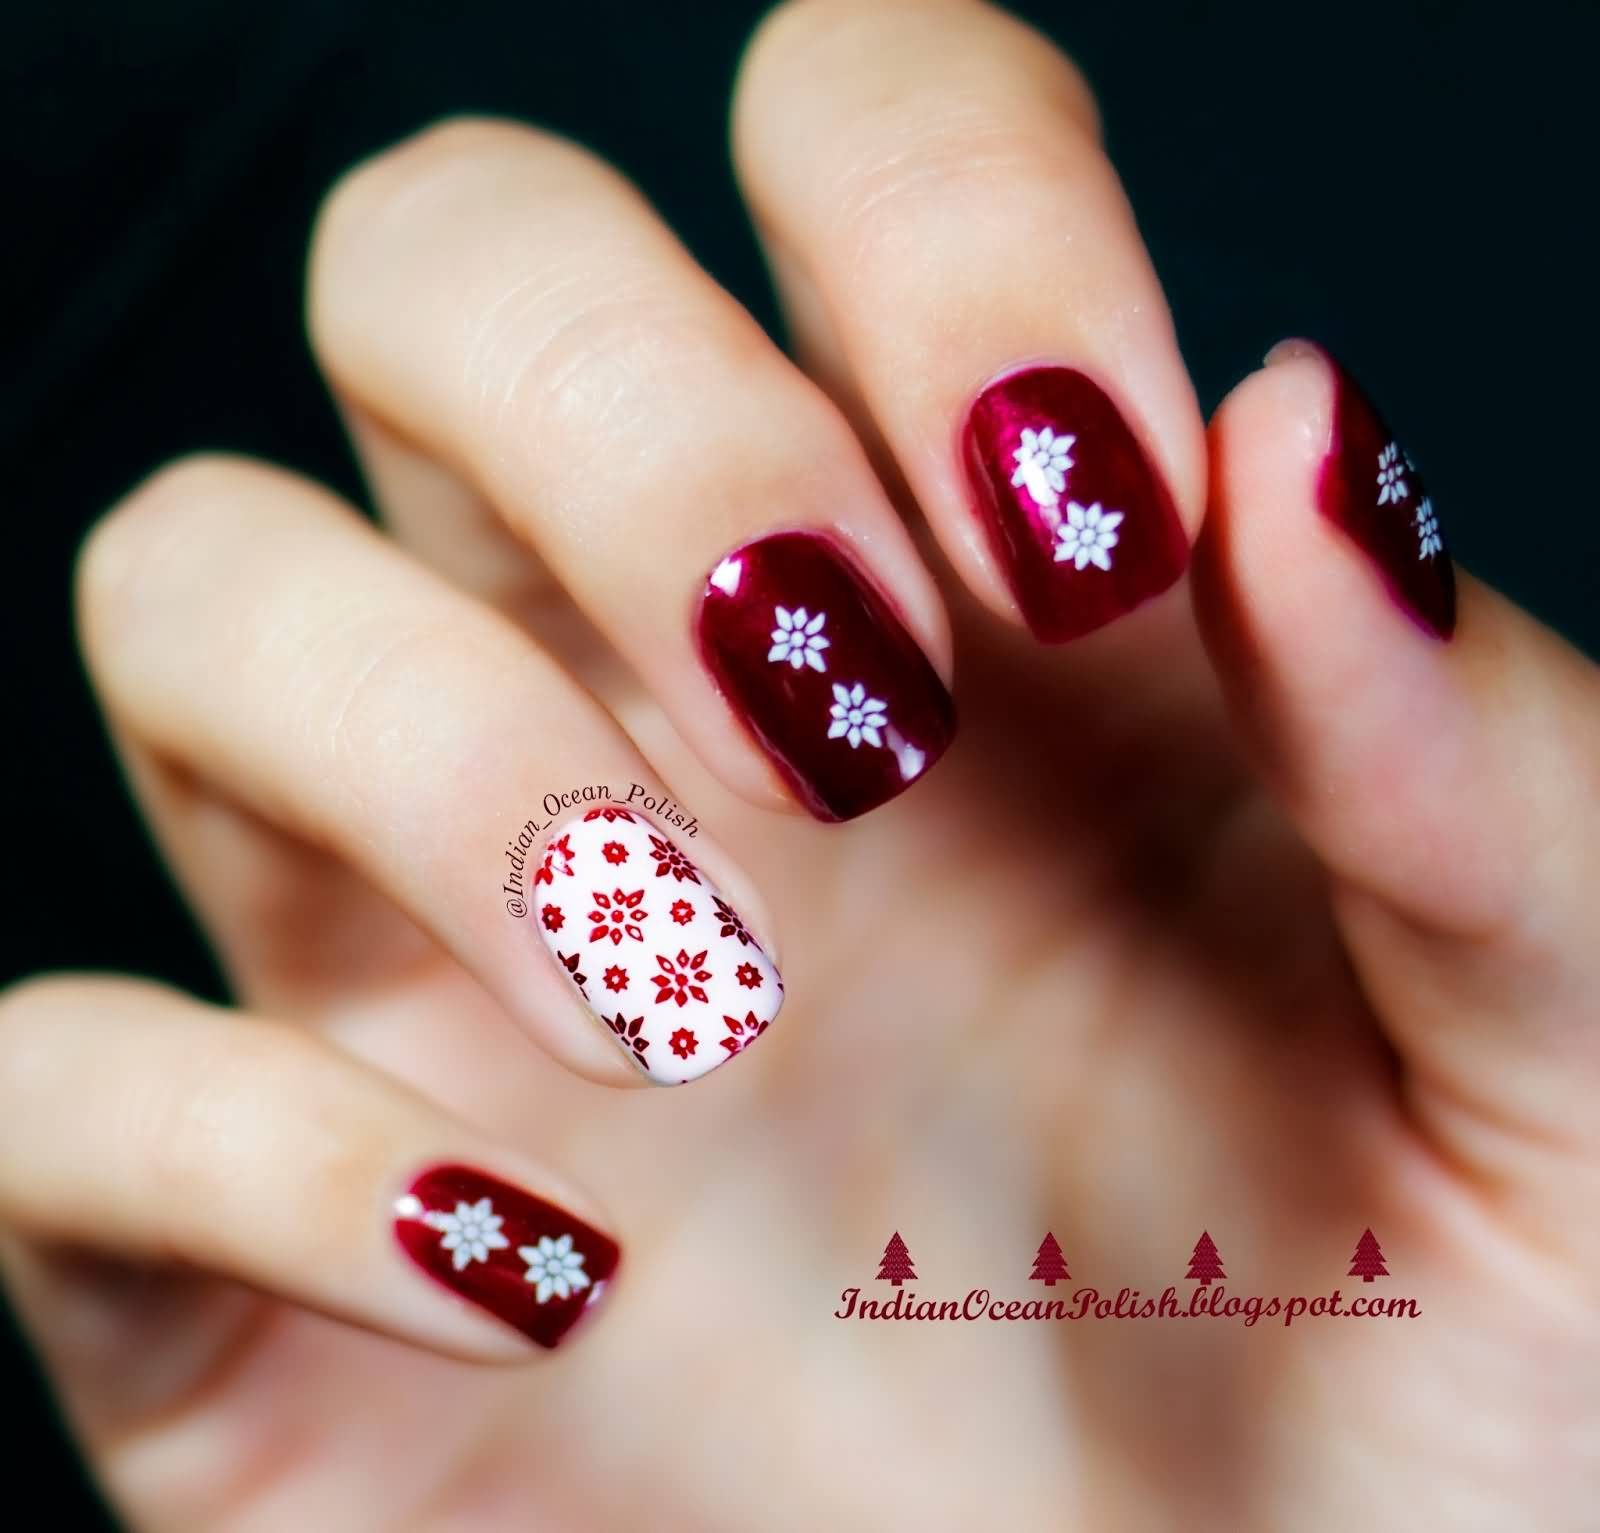 Christmas Nail Art For Short Nails: 50 Christmas Nail Art Ideas